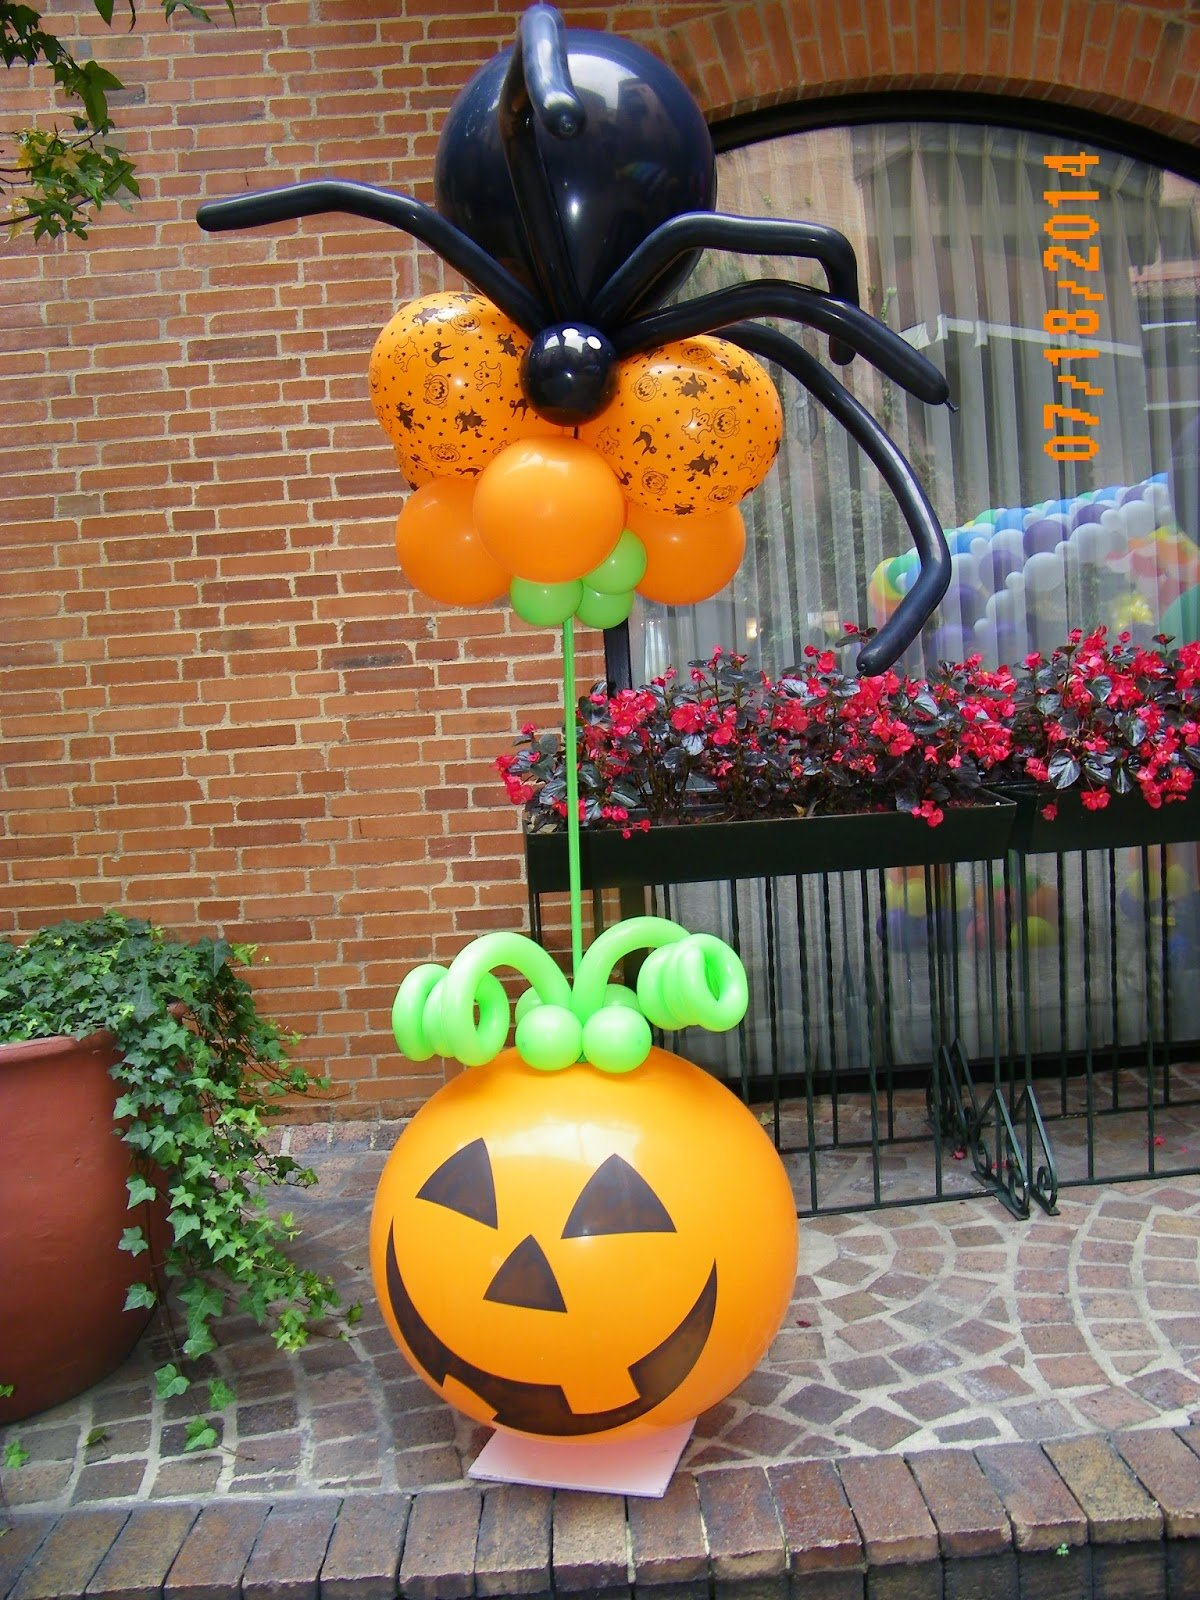 15 ideas sencillas para decorar con globos en halloween - Ideas decoracion halloween fiesta ...